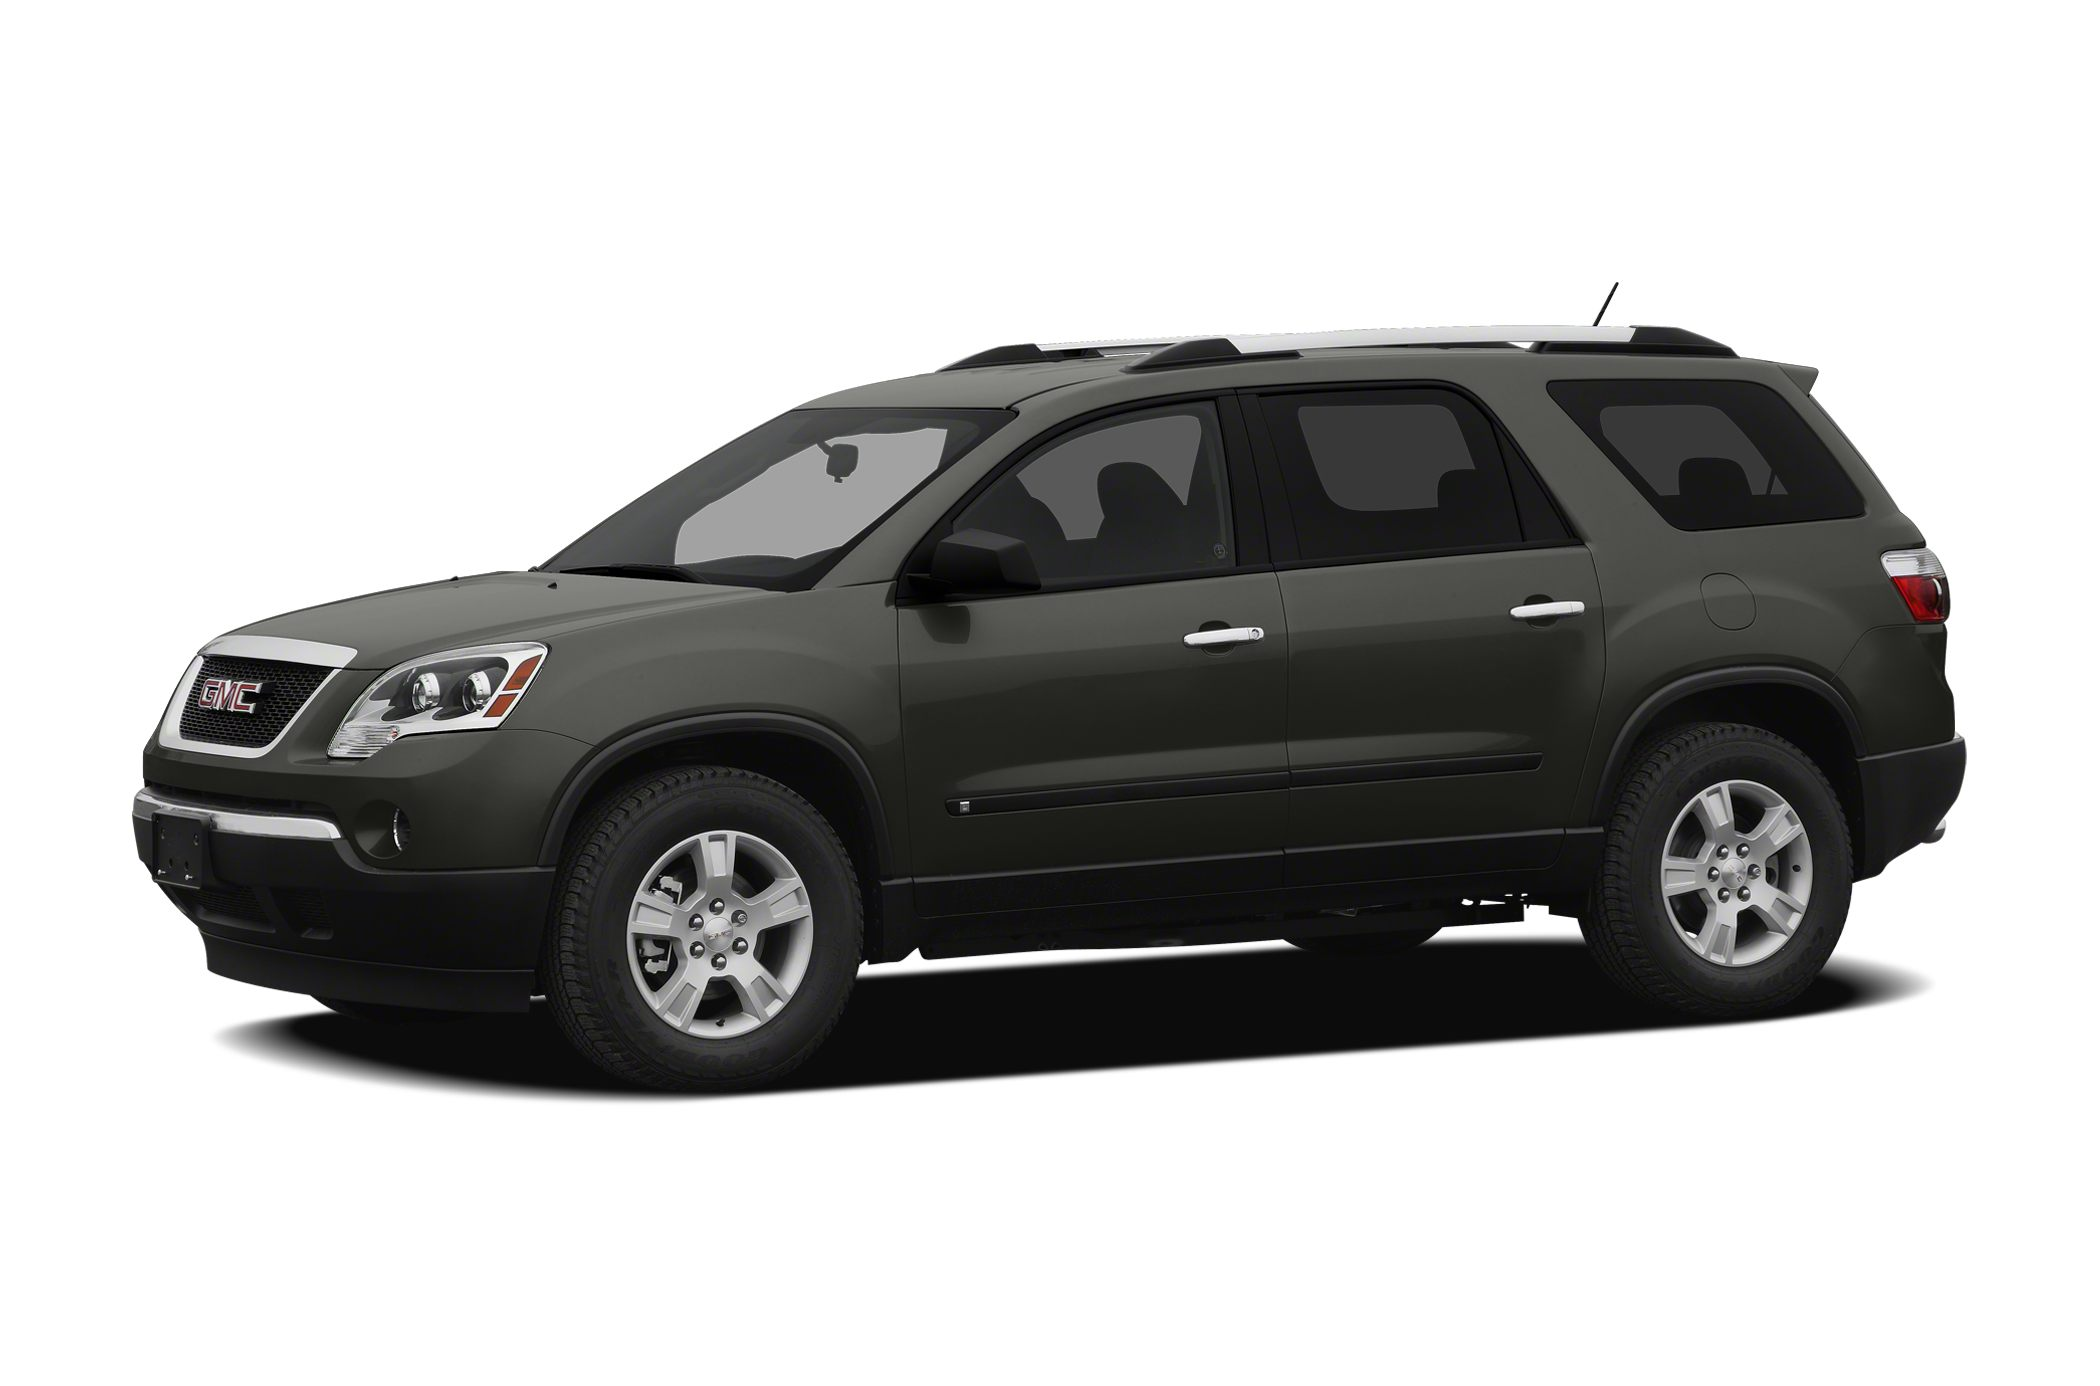 2011 GMC Acadia SLE SUV for sale in Orangeburg for $20,995 with 74,130 miles.